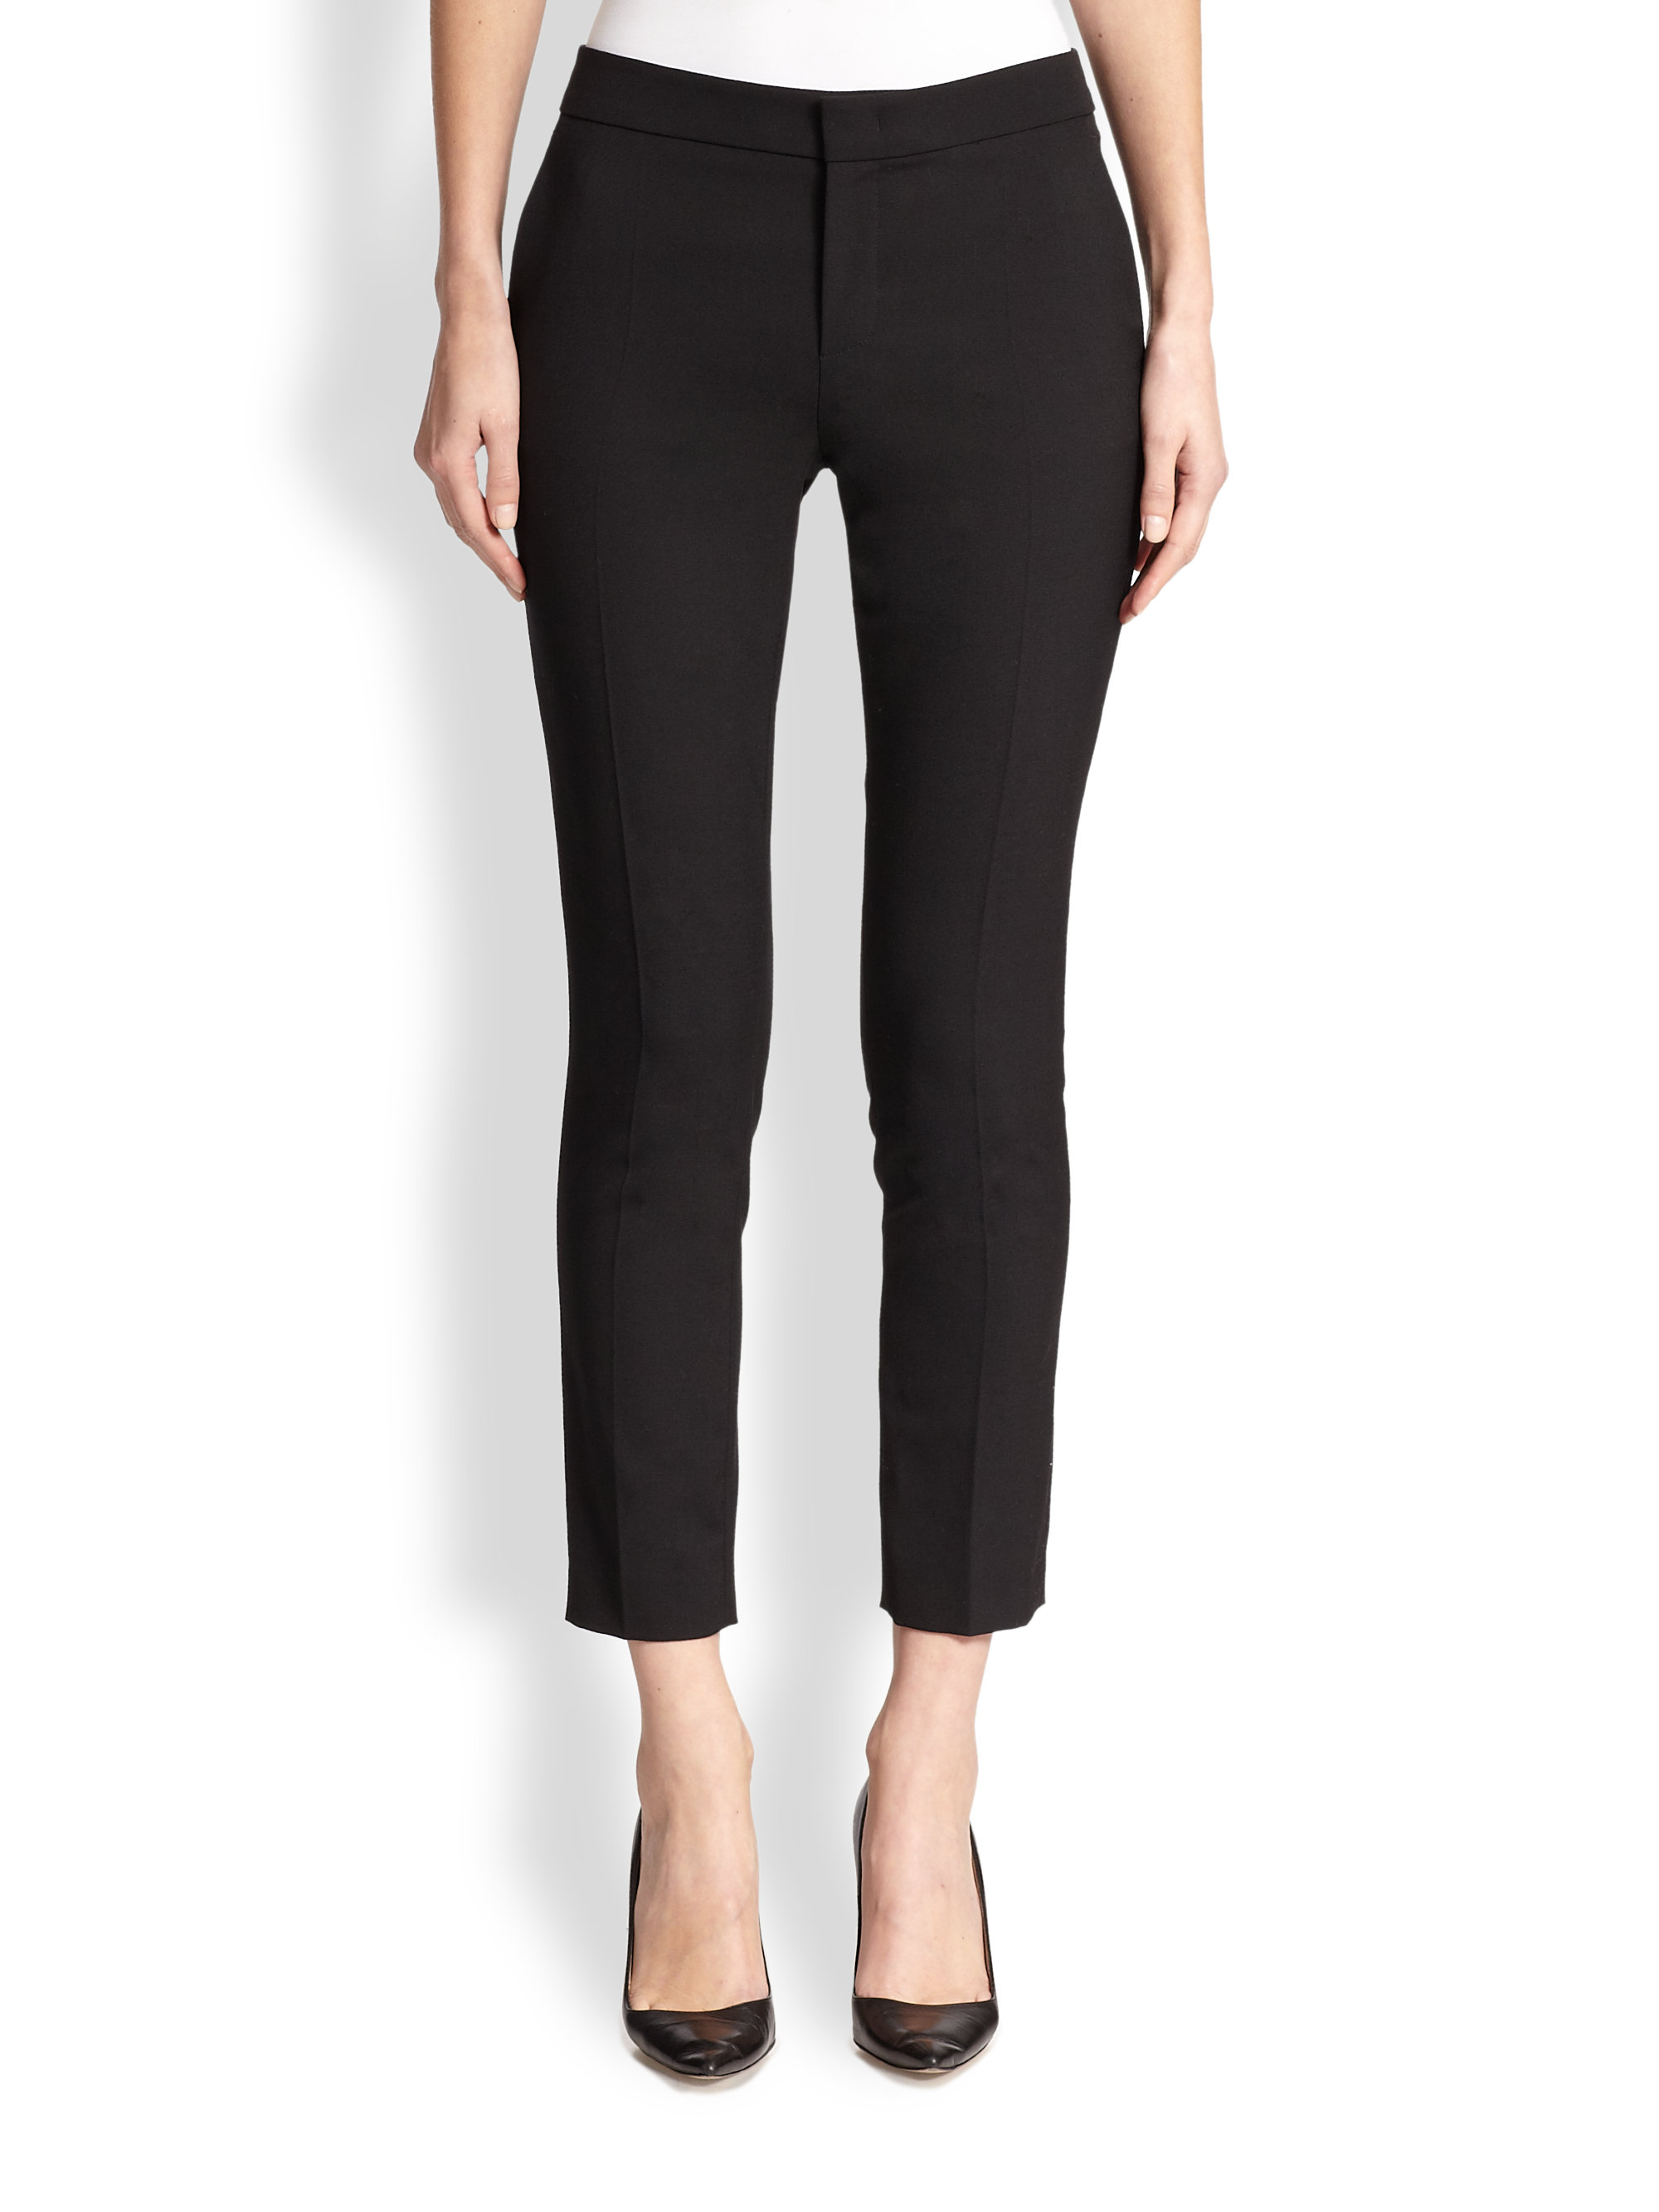 Best prices on Black womens ankle pants in Women's Pants online. Visit Bizrate to find the best deals on top brands. Read reviews on Clothing & Accessories merchants and buy with confidence.